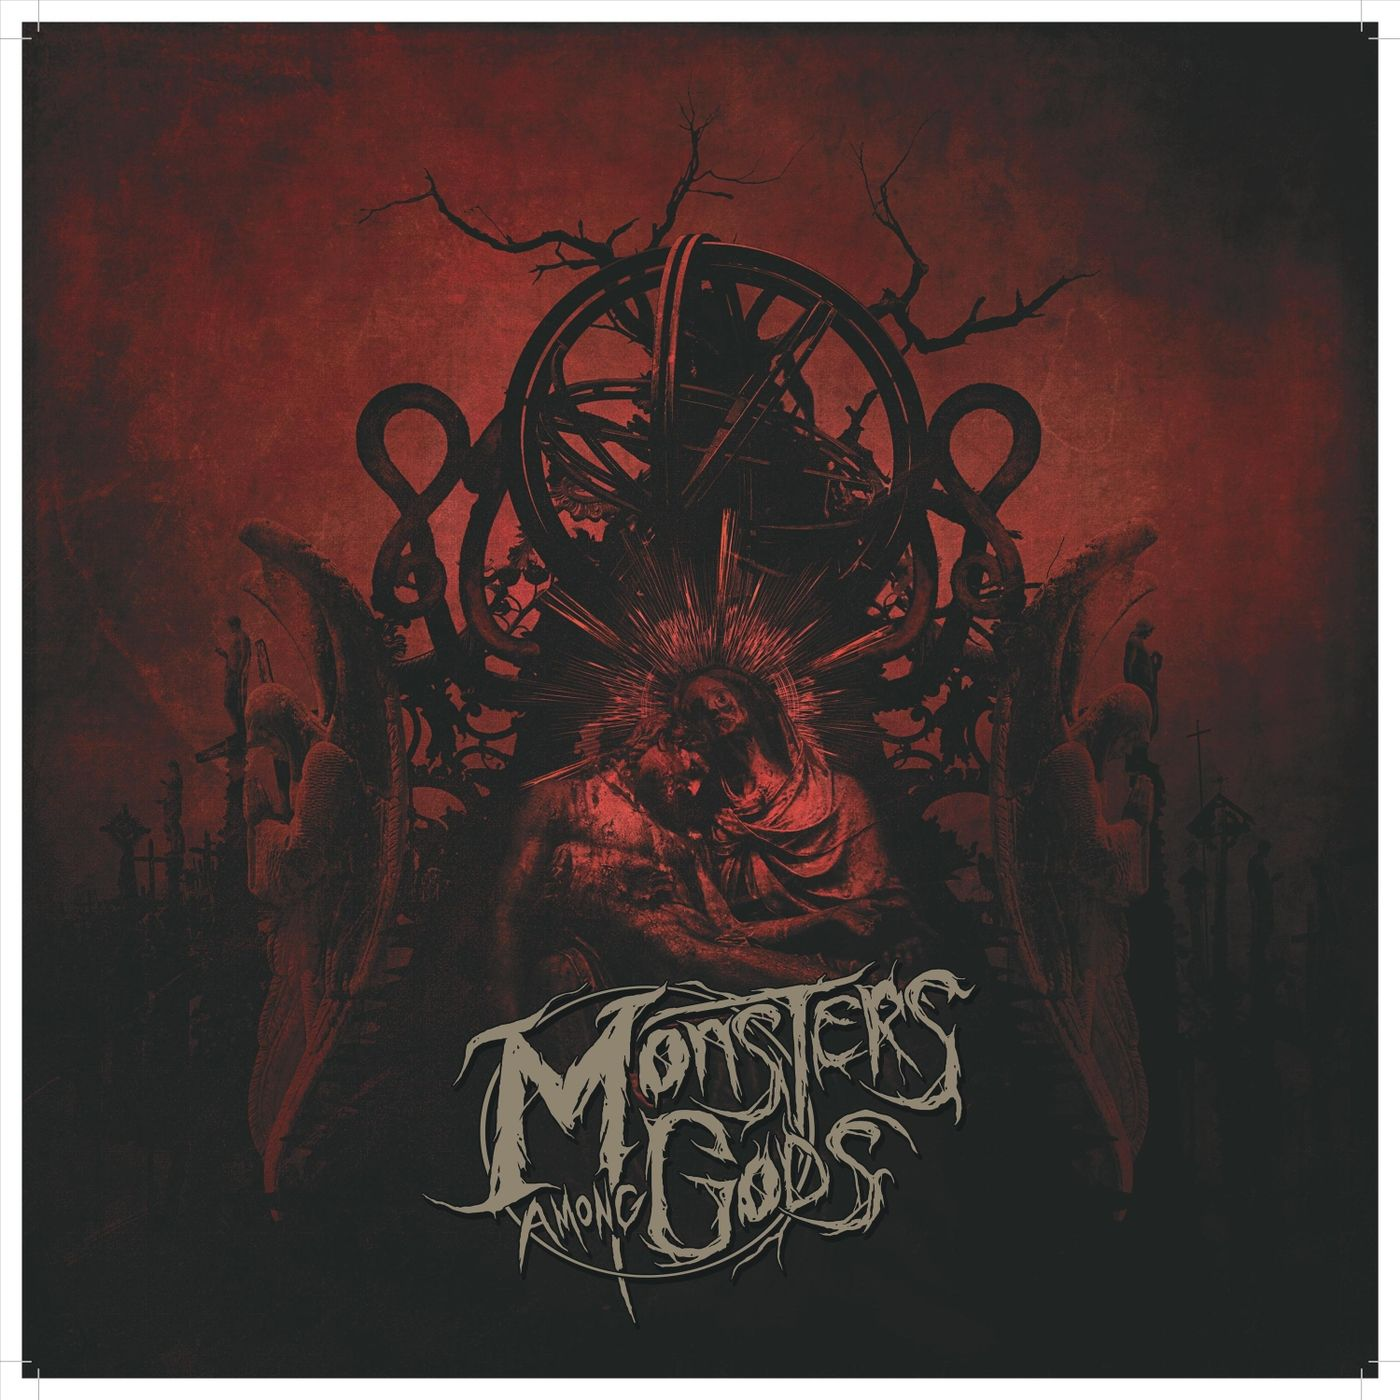 Monsters Among Gods - Monsters Among Gods [EP] (2019)